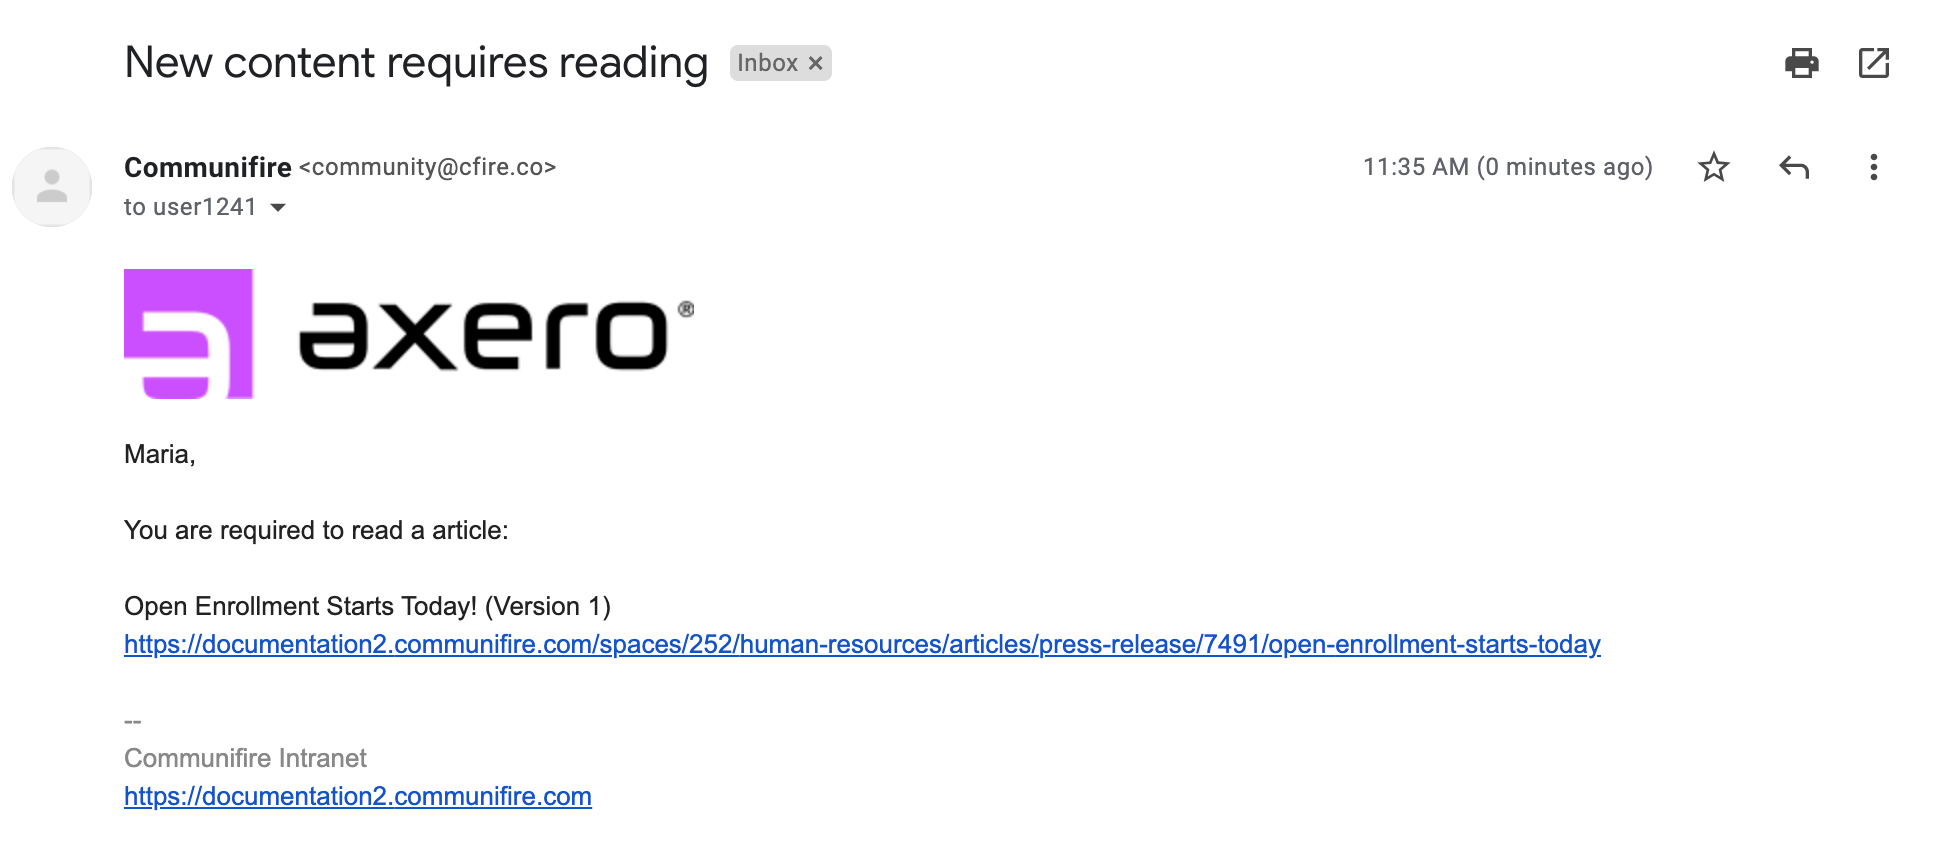 Example email with an image